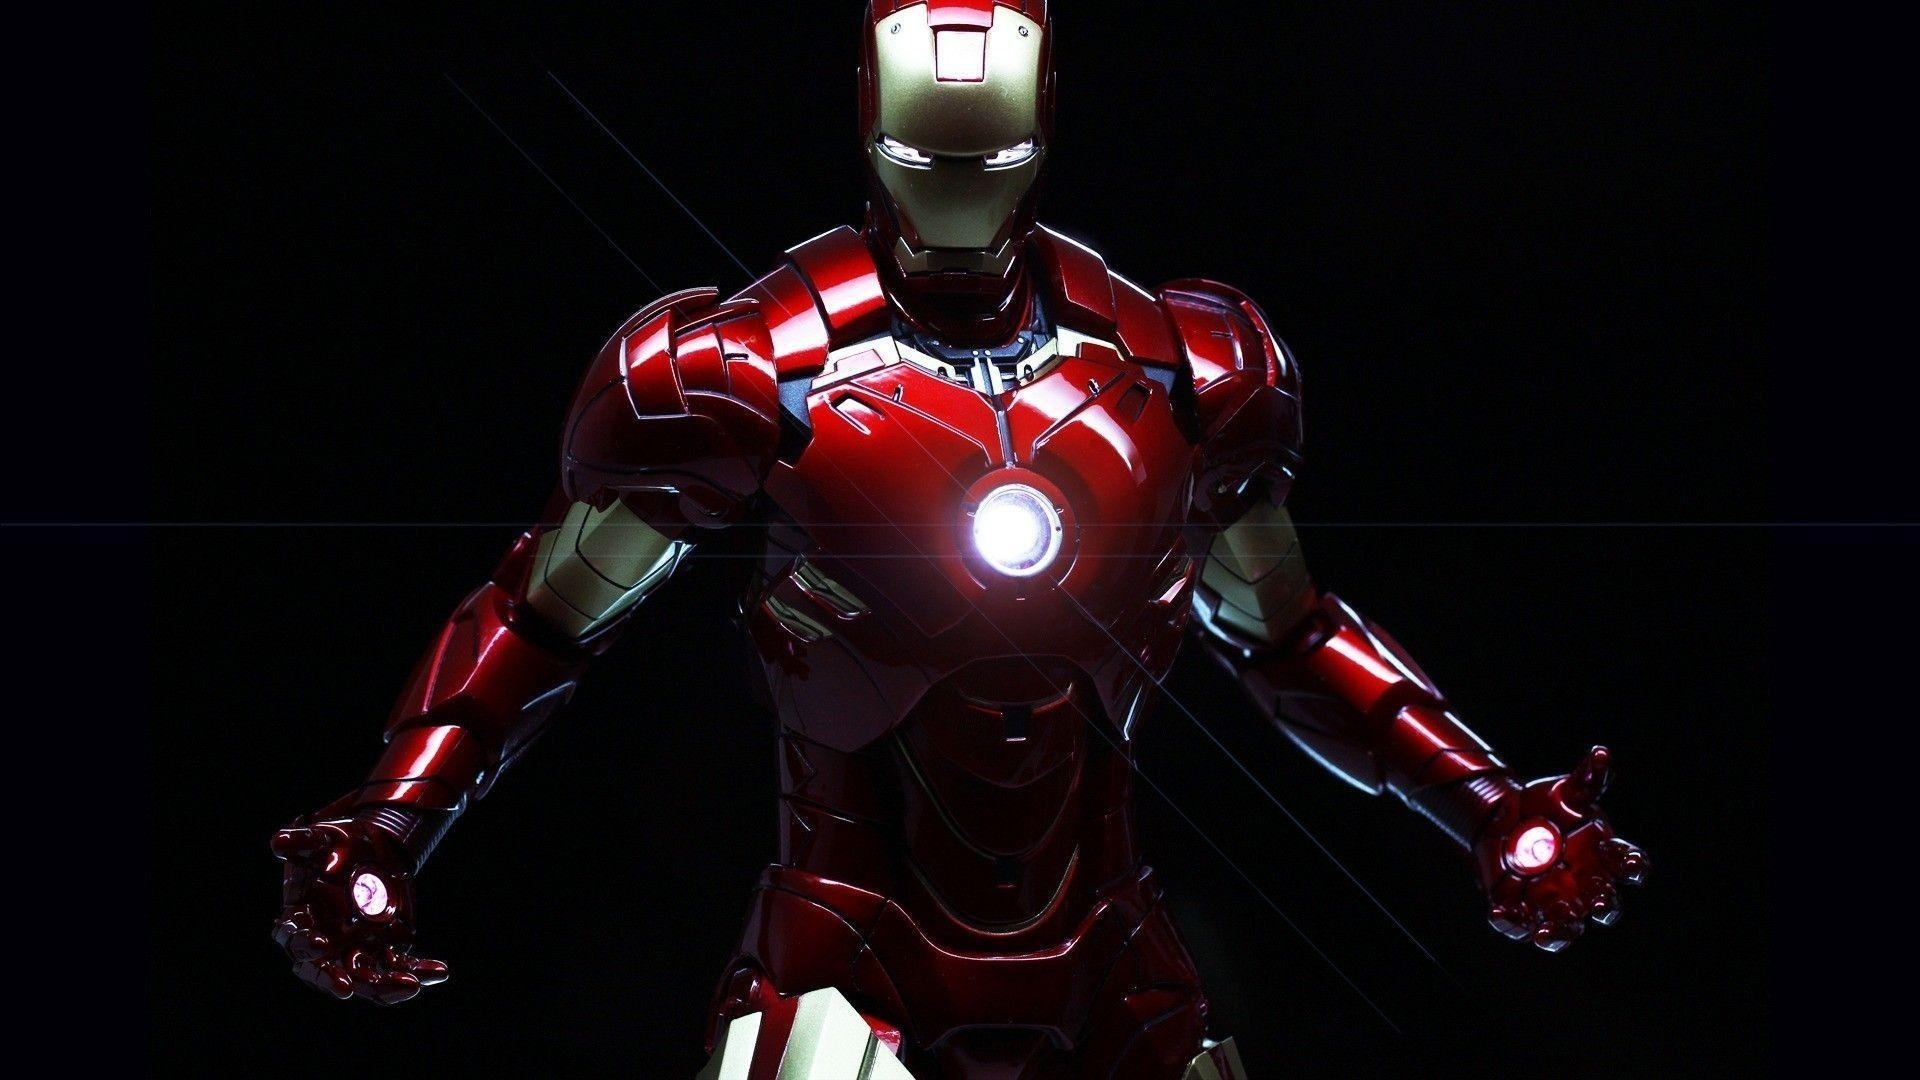 iron man armor wallpapers - wallpaper cave